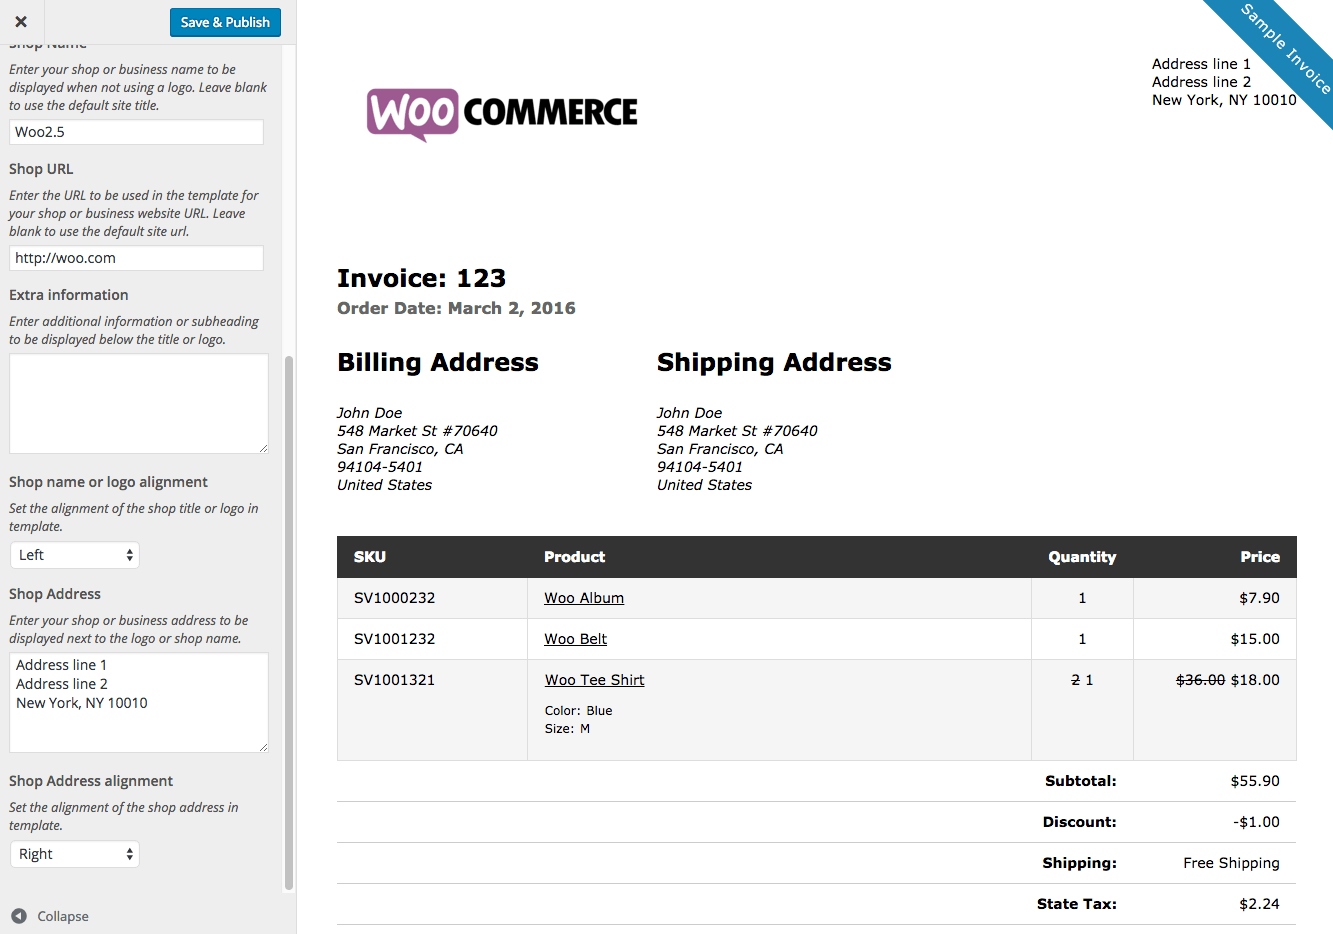 Helpingtohealus  Inspiring Woocommerce Print Invoices Amp Packing Lists  Woocommerce Docs With Exquisite Woocommerce Print Invoices  Packing Lists Customizer With Beauteous Medical Receipts Also Sephora Exchange Policy Without Receipt In Addition How To Fake A Receipt And What Receipts To Save For Taxes As Well As Petty Cash Receipt Template Additionally Where Is My Tracking Number On My Usps Receipt From Docswoocommercecom With Helpingtohealus  Exquisite Woocommerce Print Invoices Amp Packing Lists  Woocommerce Docs With Beauteous Woocommerce Print Invoices  Packing Lists Customizer And Inspiring Medical Receipts Also Sephora Exchange Policy Without Receipt In Addition How To Fake A Receipt From Docswoocommercecom